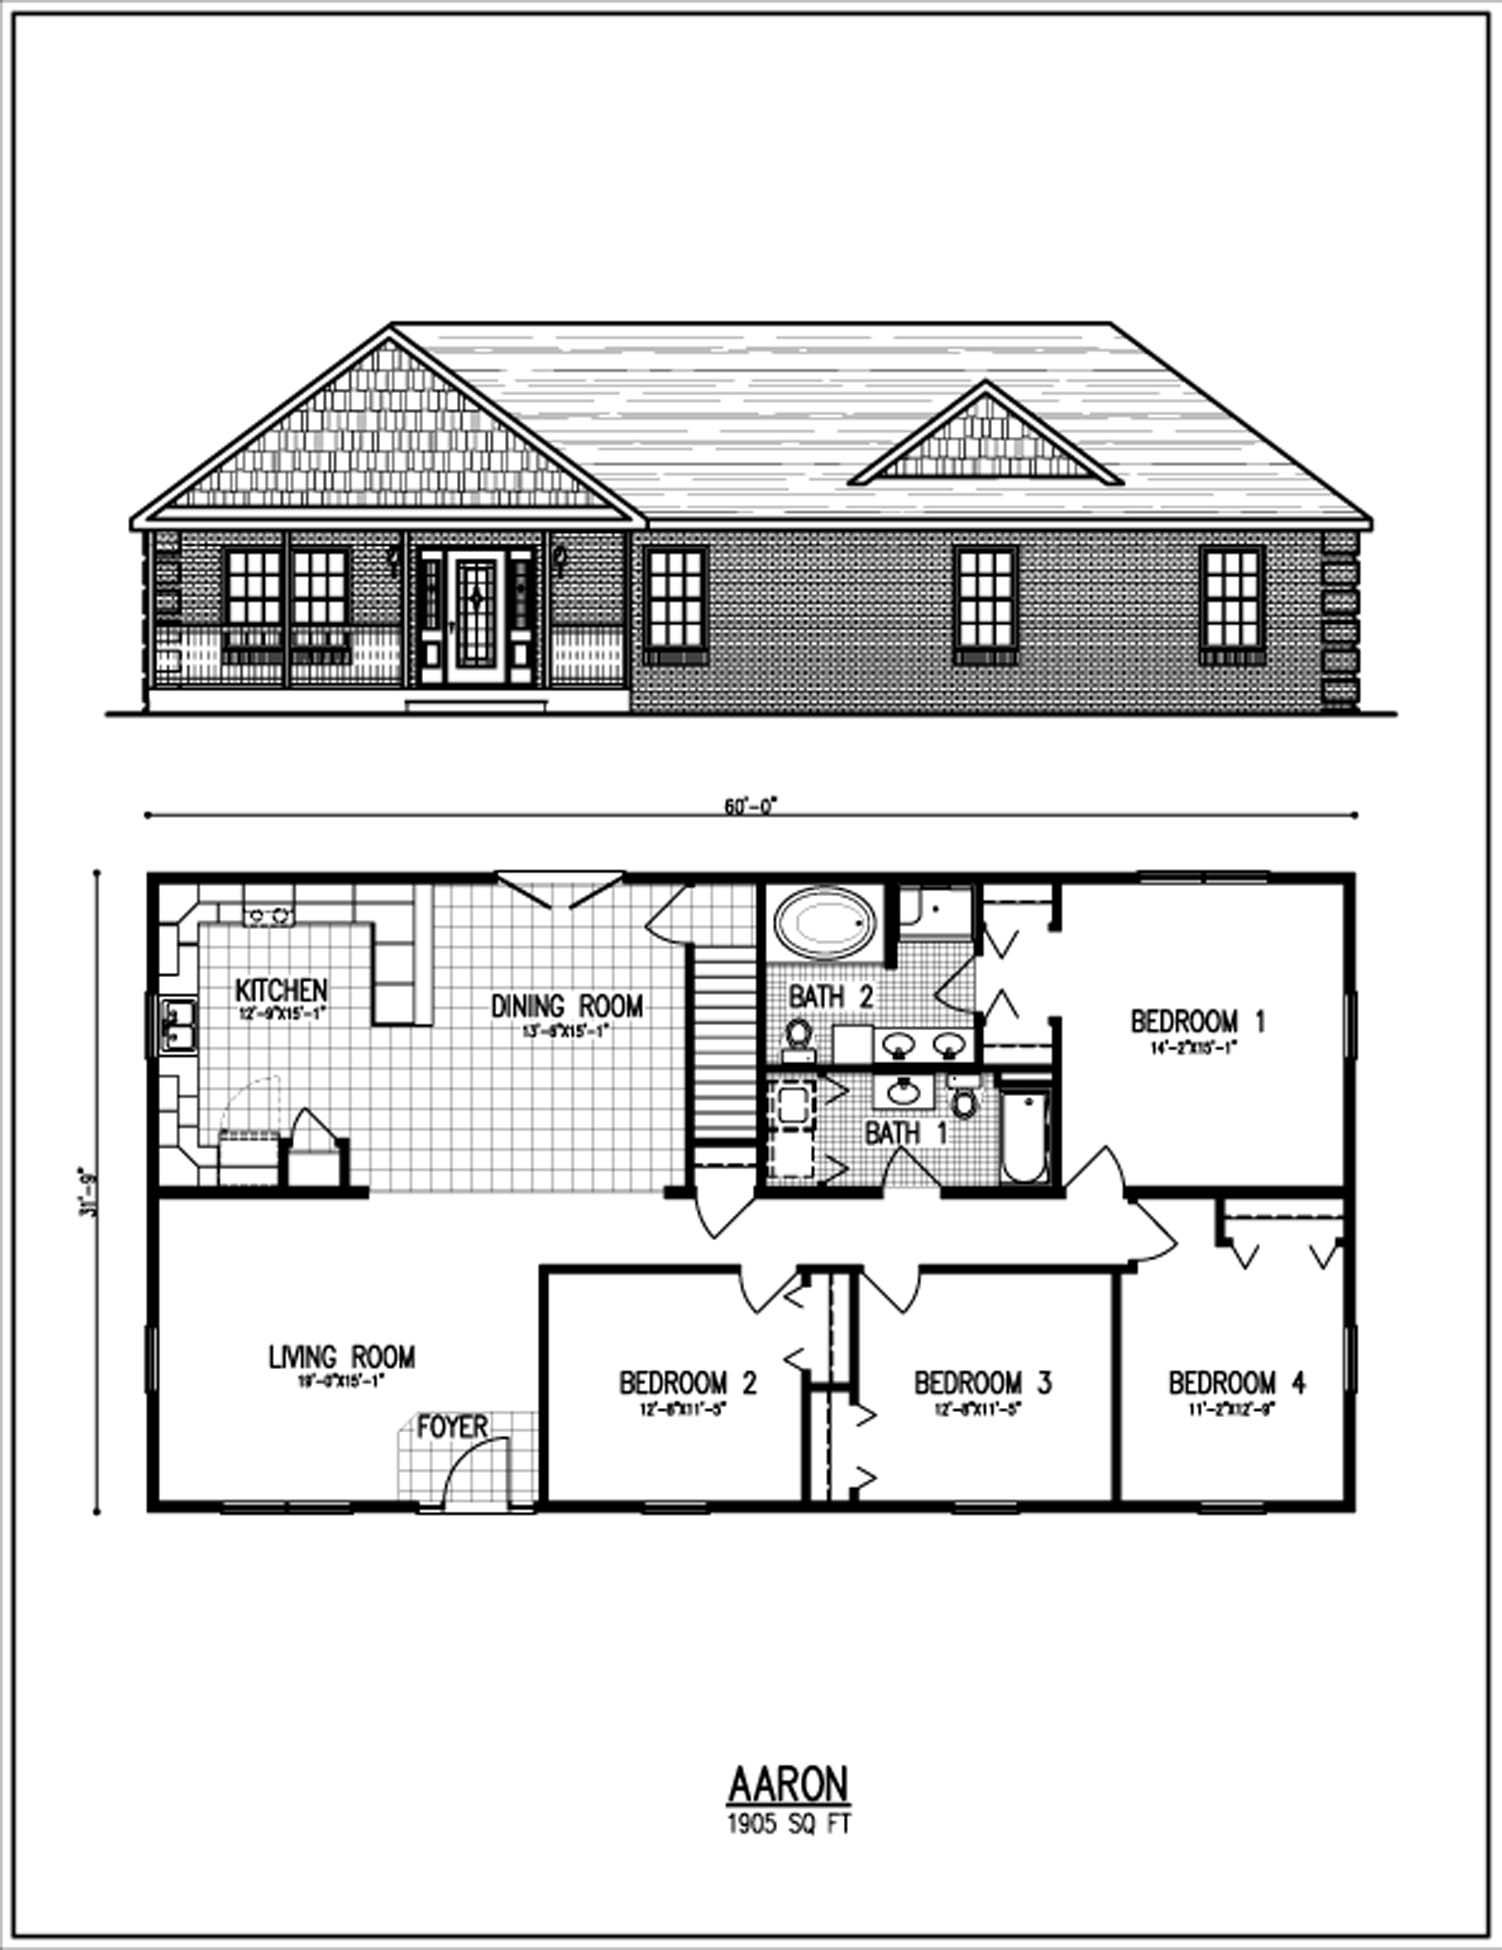 all american homes floorplan center staffordcape